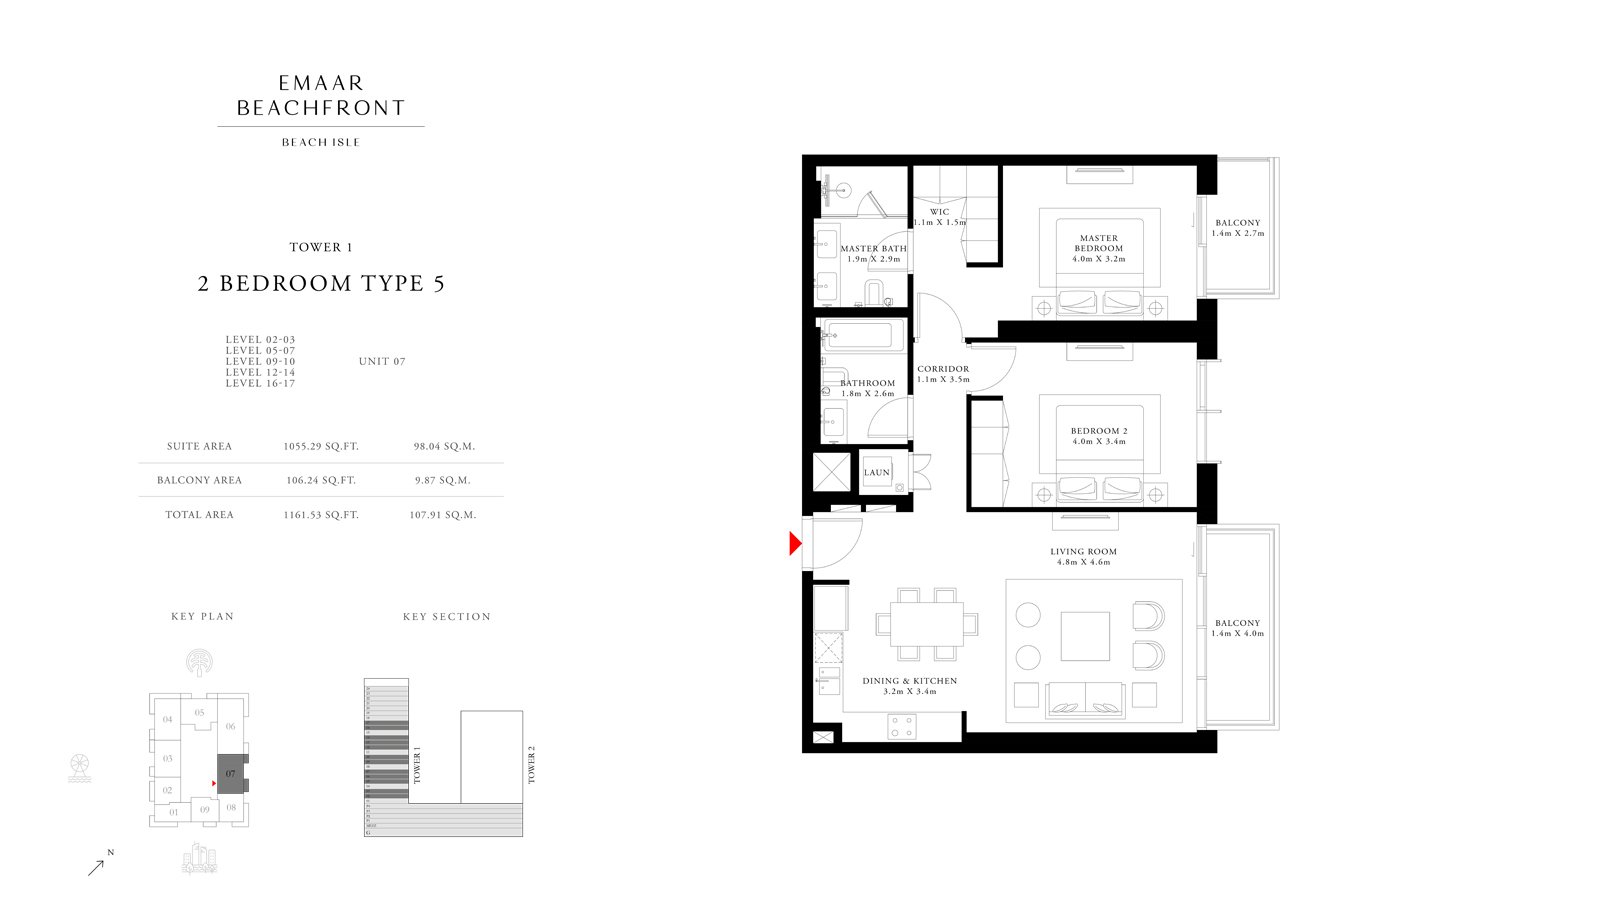 2 Bedroom Type 5 Tower 1, Size 1161    sq. ft.